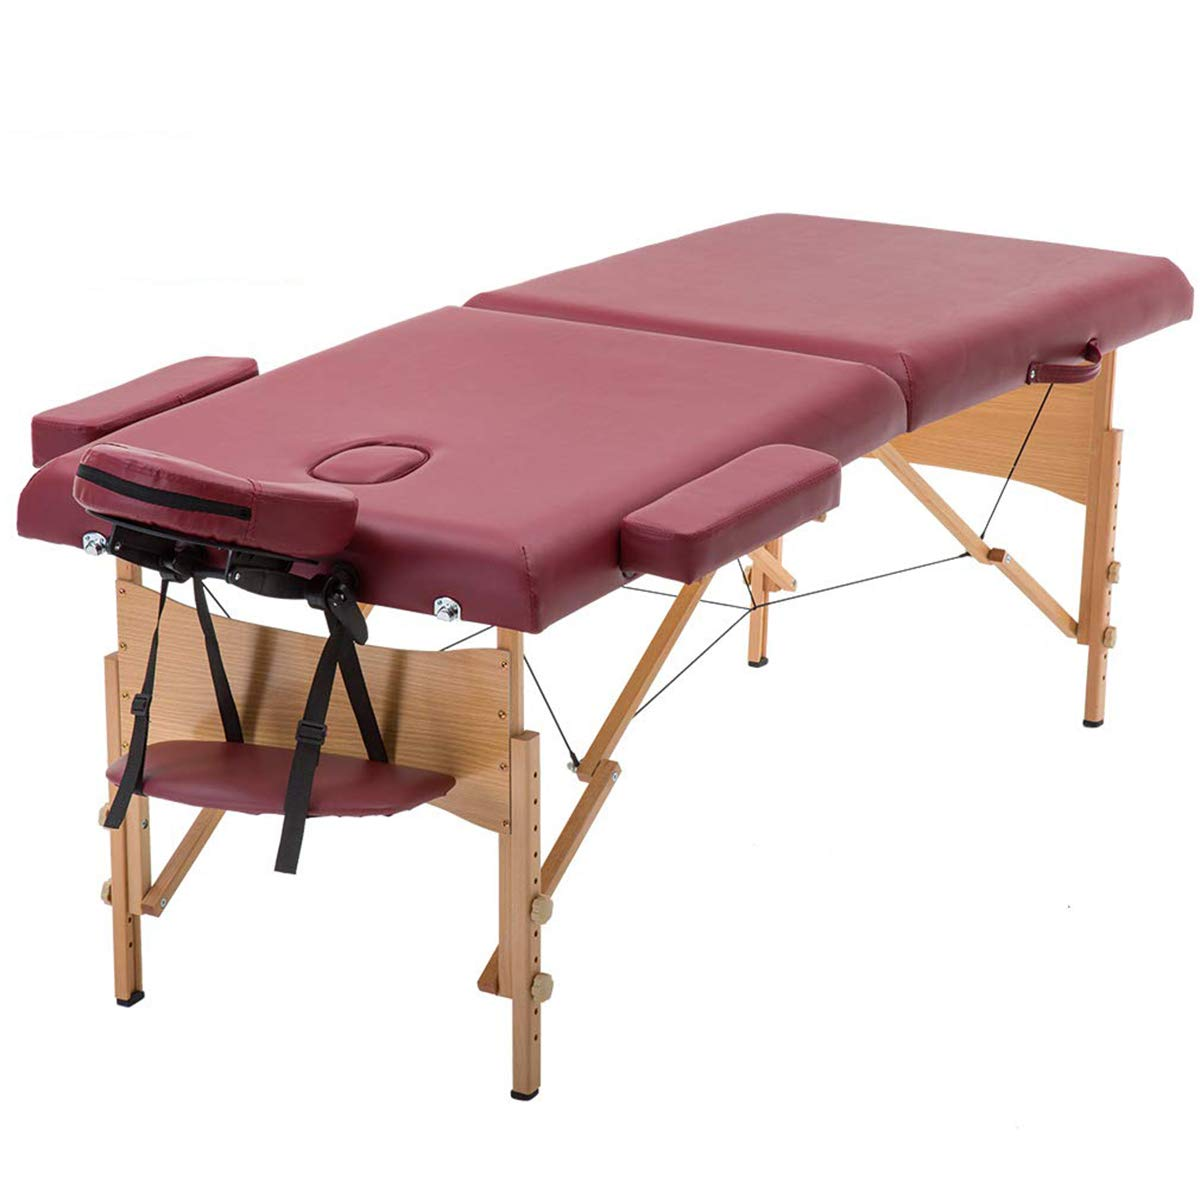 Massage Table Portable Massage Bed Spa Bed Hight Adjustable Massage Table Folding Facial Cradle Salon Bed,Burgundy by CYQAQ